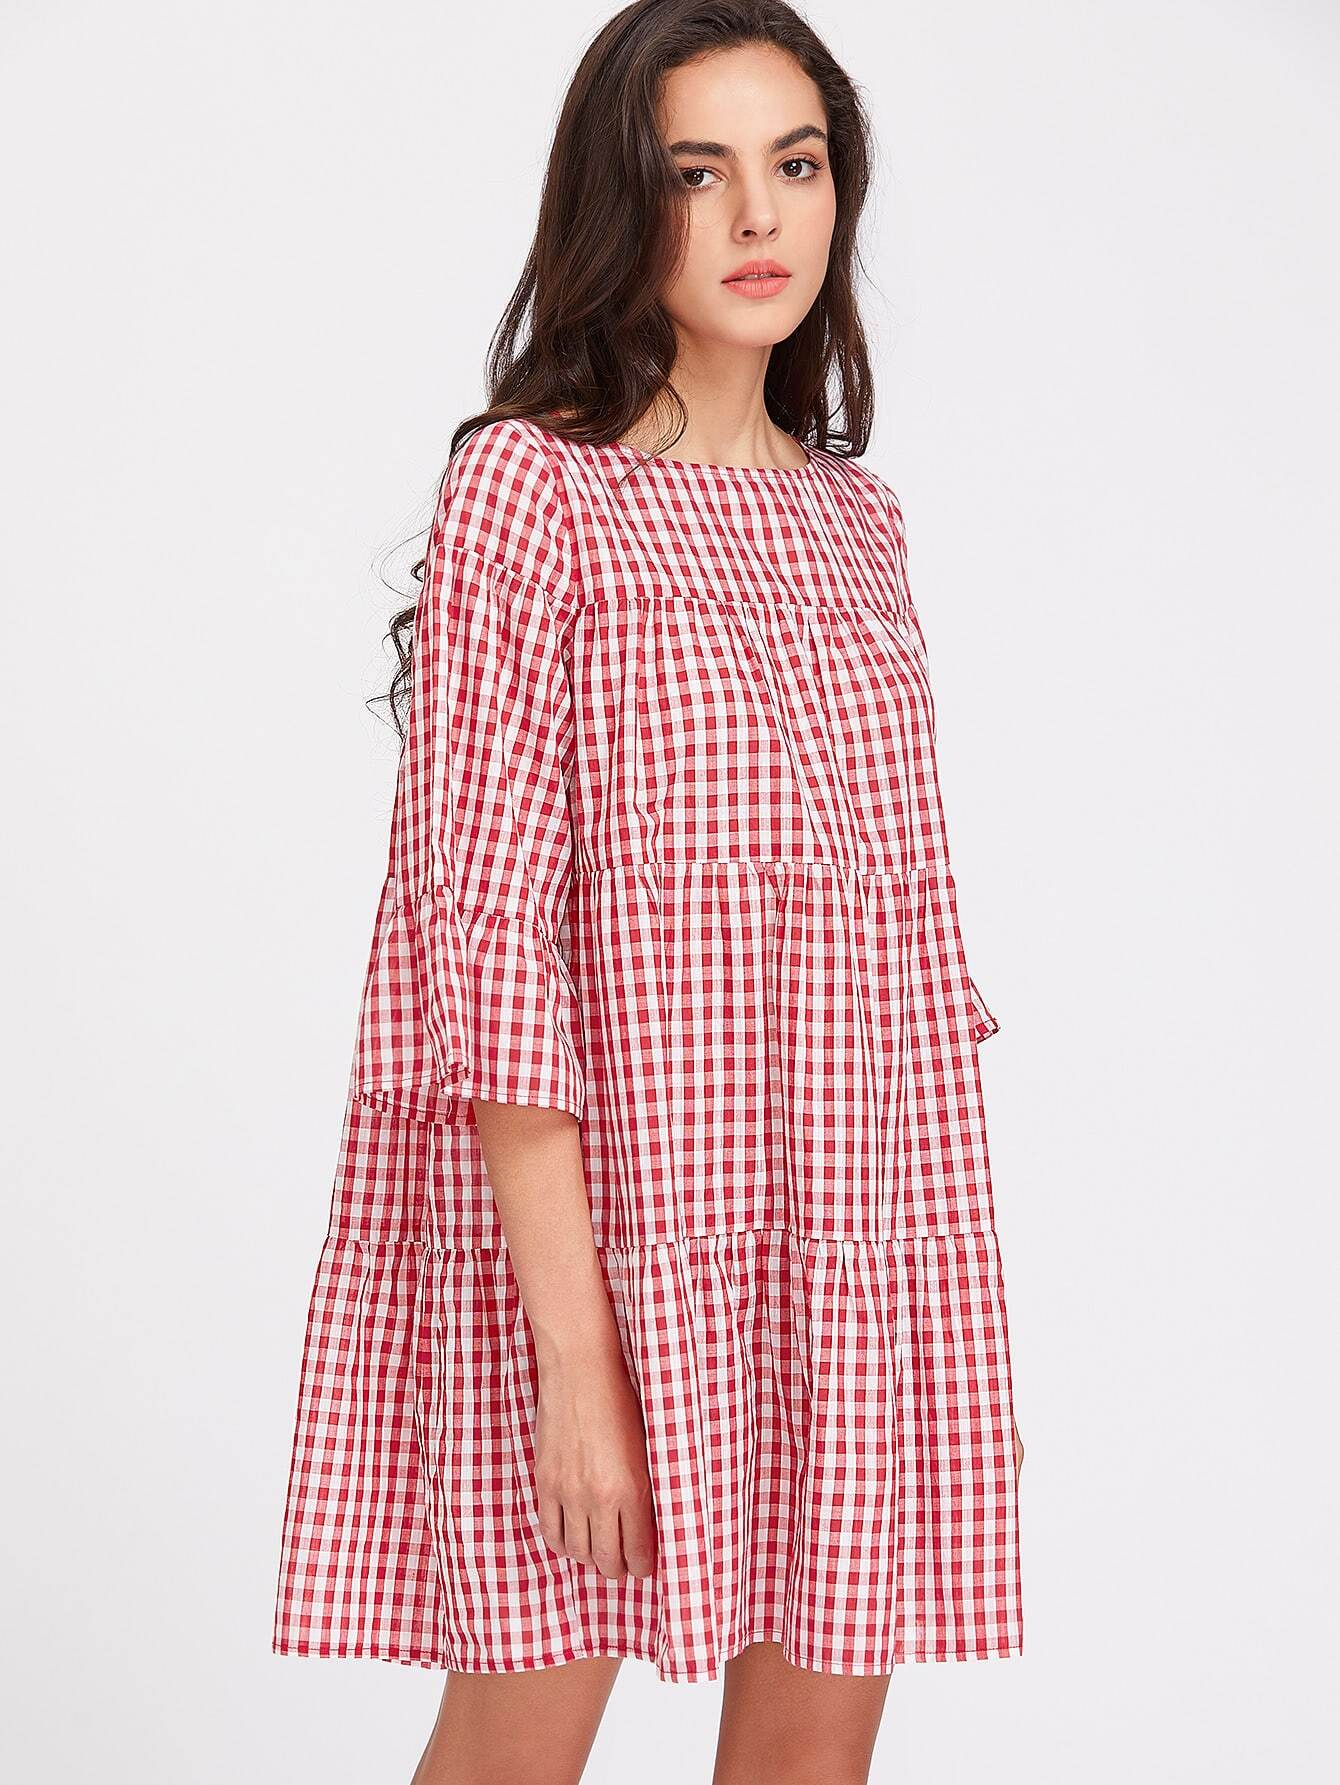 3/4 Sleeve Tiered Gingham Tent Dress collared wrap front gingham tiered dress